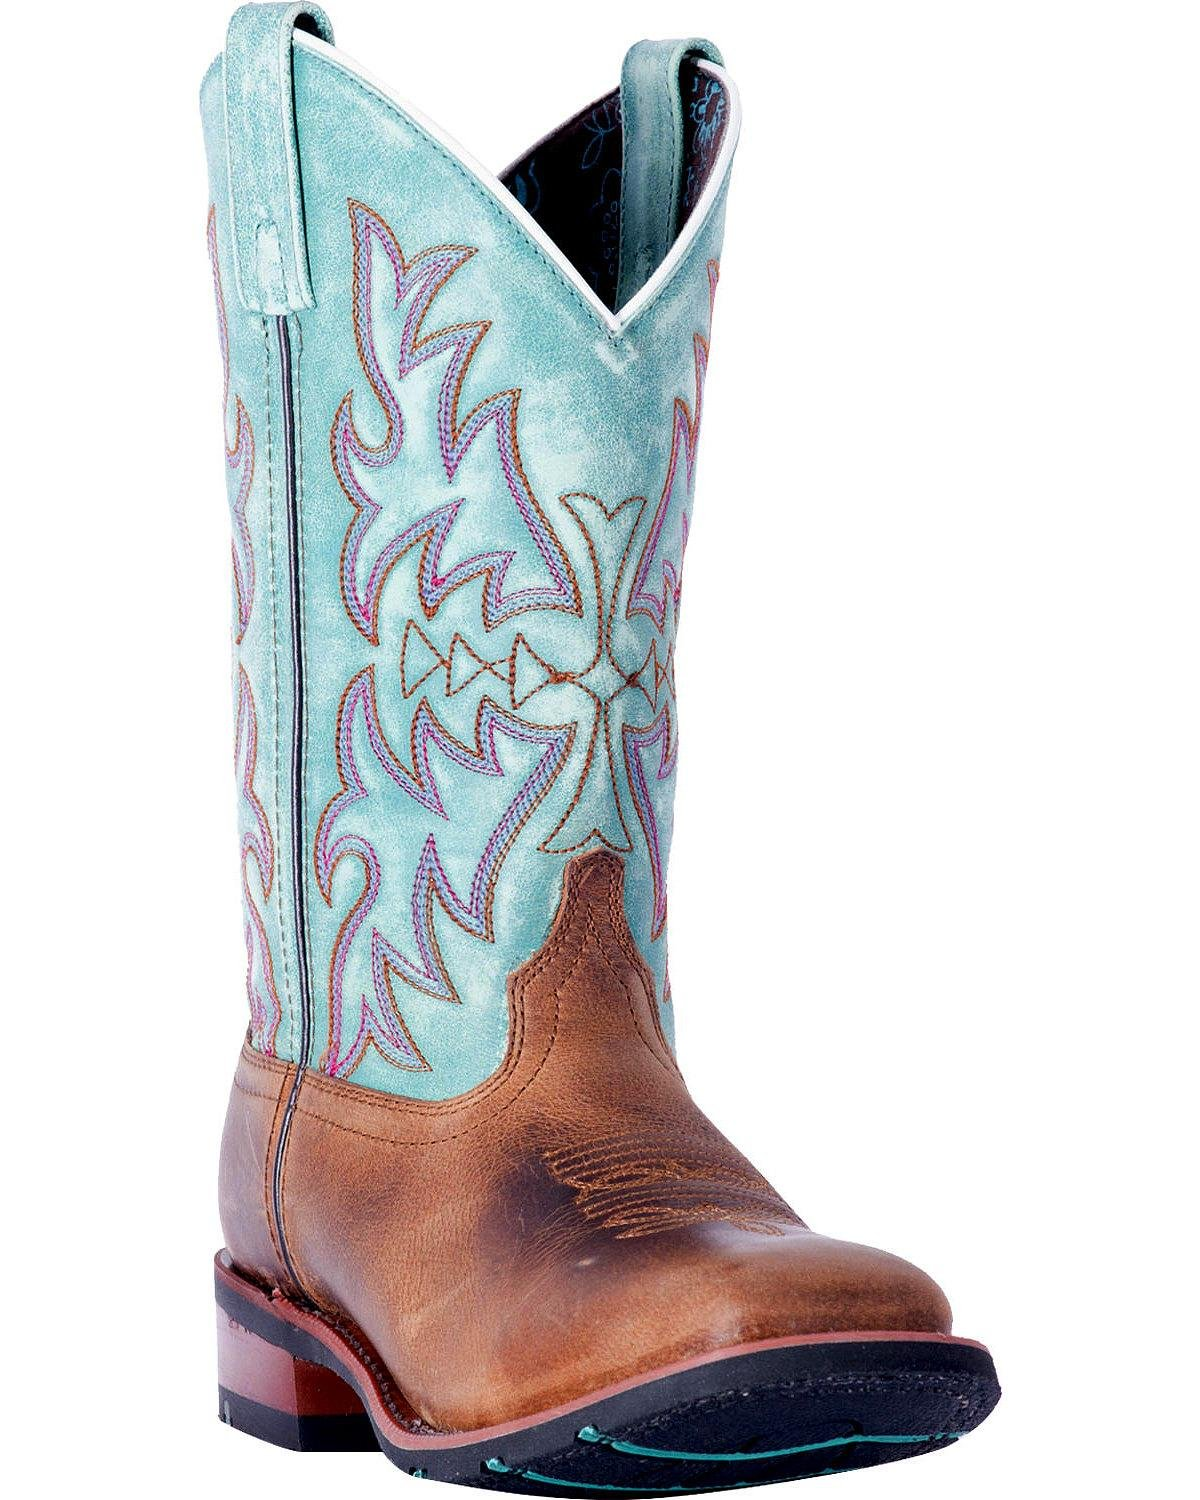 Laredo Women's Anita Brown/Blue Cowgirl Boot Square Toe - 5607 B079NDYP88 7.5 B(M) US|Brown